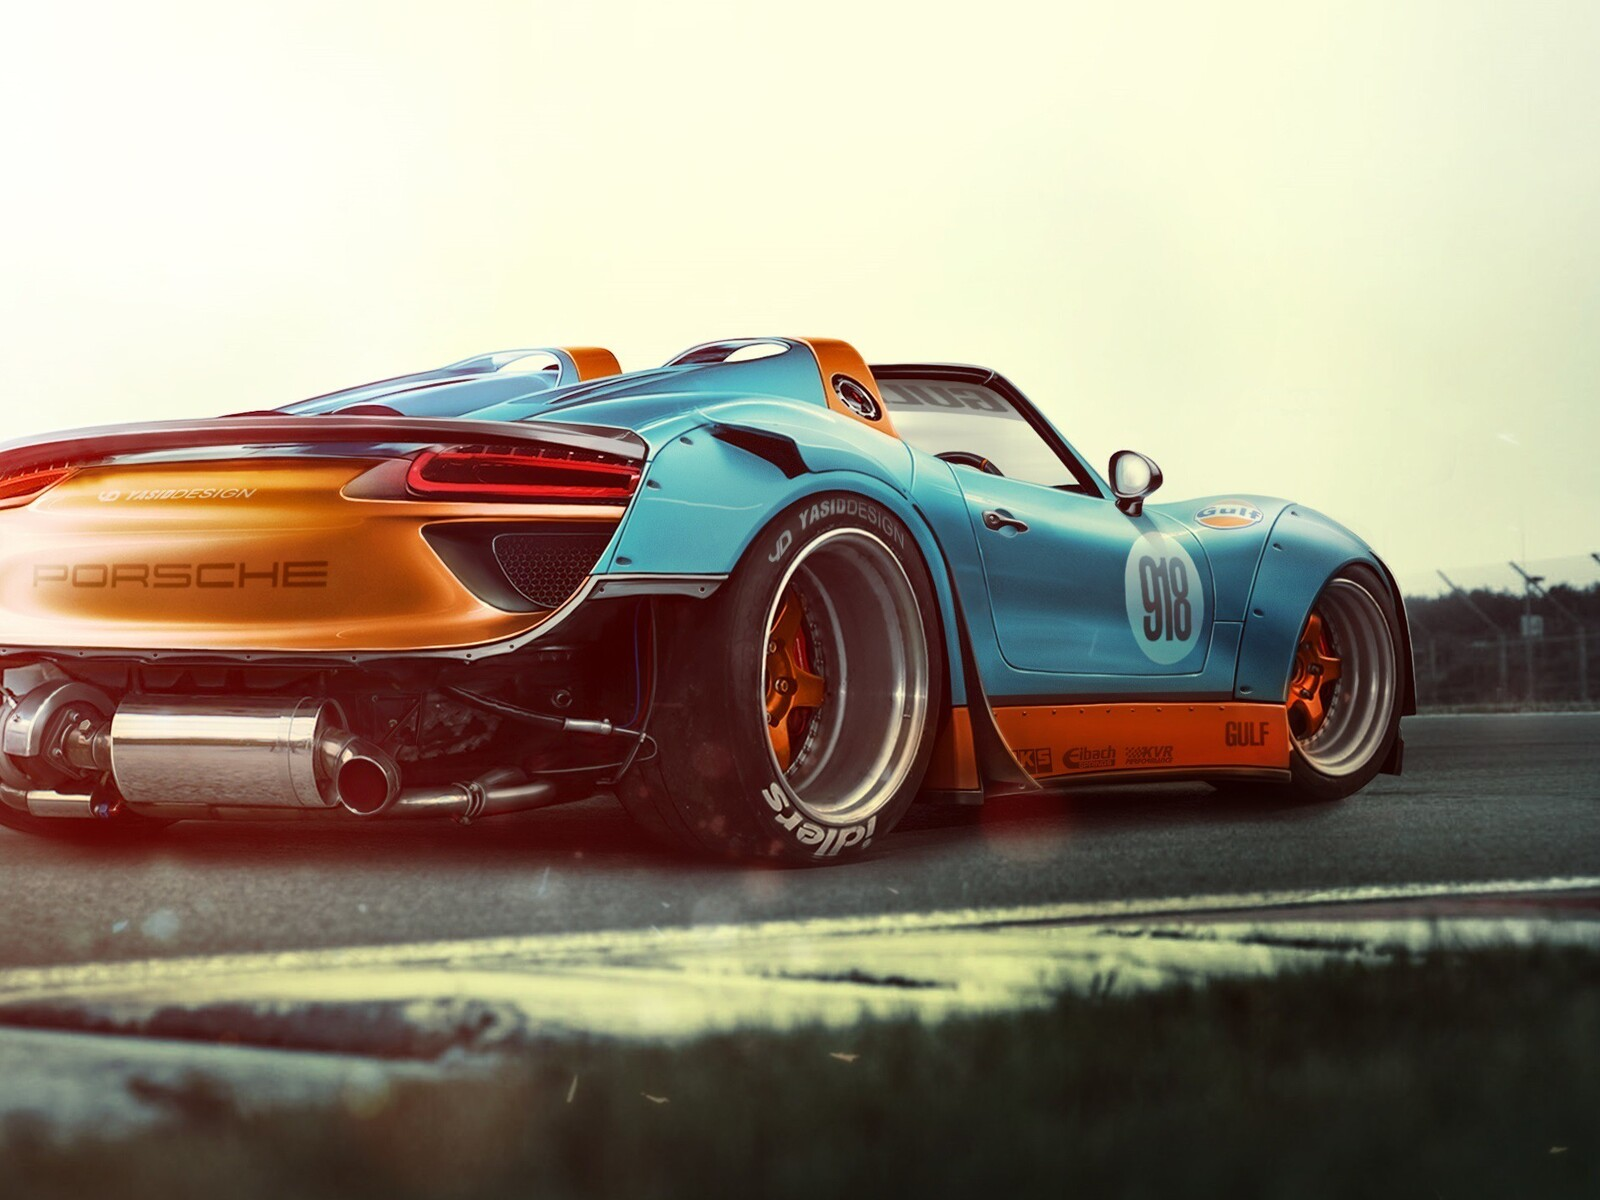 1600x1200 Porsche Fan Art 1600x1200 Resolution Hd 4k Wallpapers Images Backgrounds Photos And Pictures